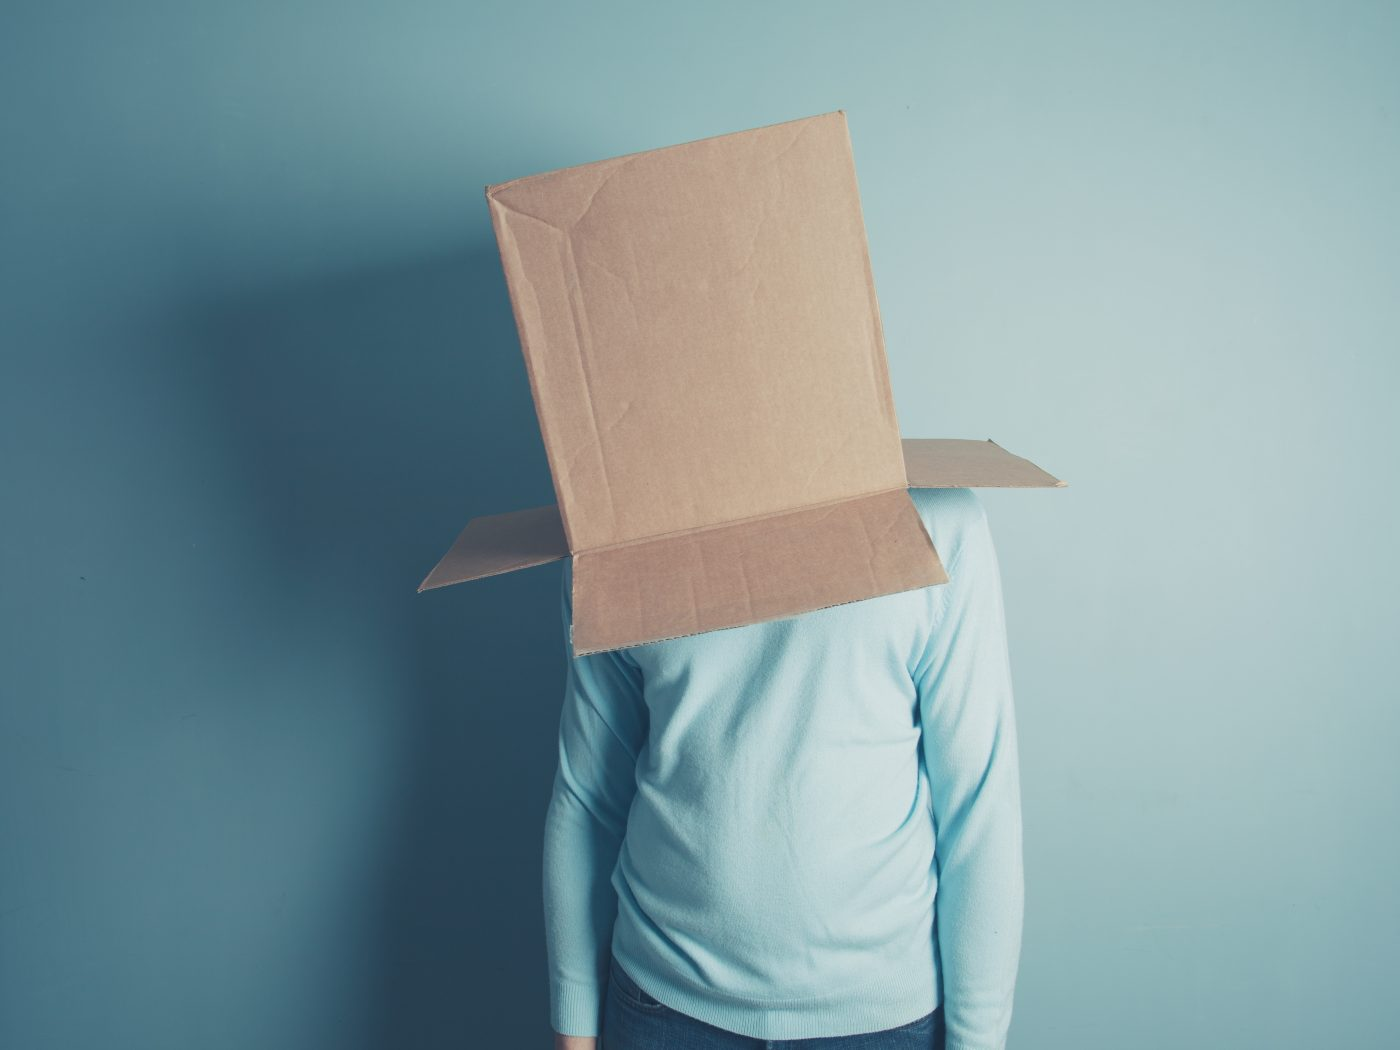 A man is standing with a cardboard box over his head